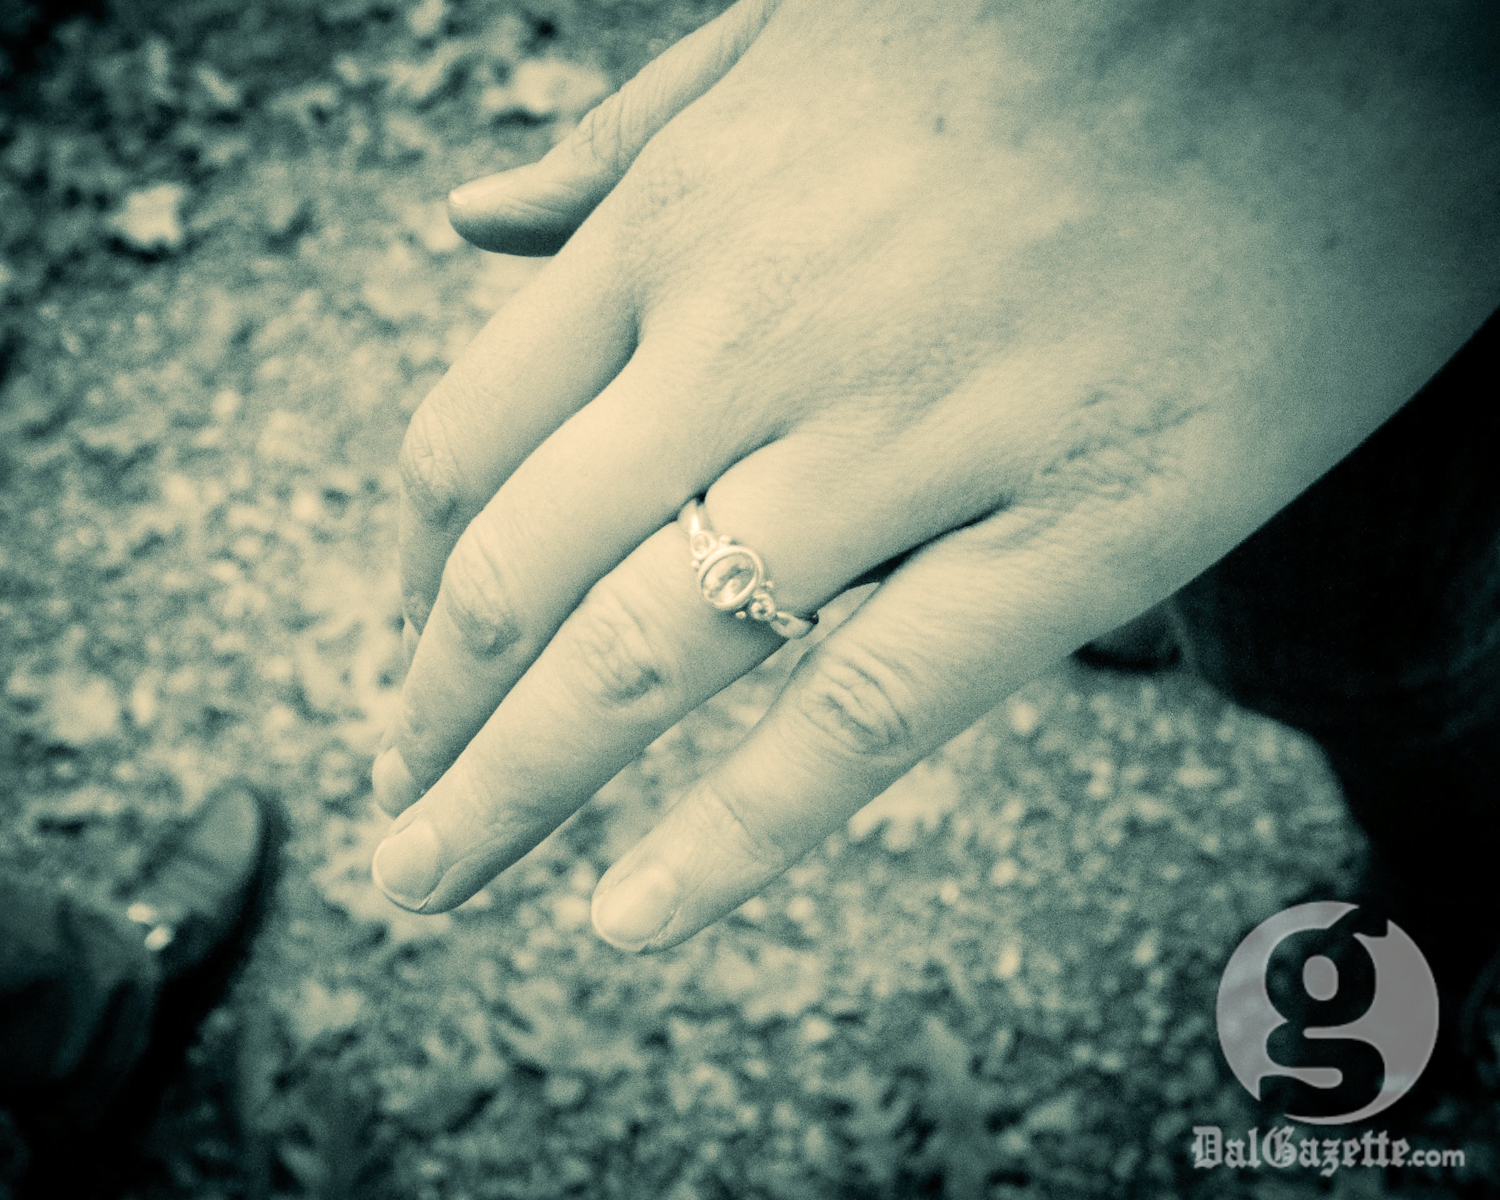 In South Korea, couples celebrate the hundredth day of their relationship with a ring. (Matt Glynn photo)